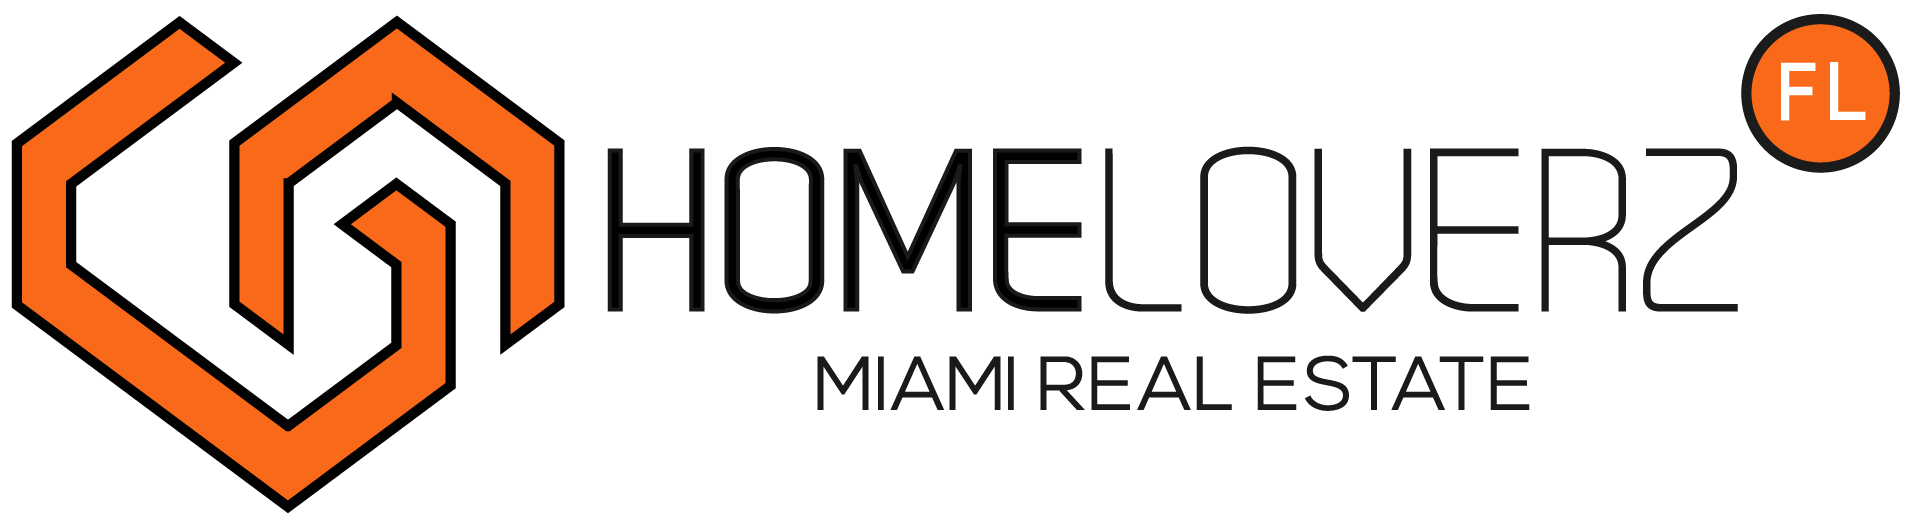 Homeloverz-Miami Real Estate – Off Market